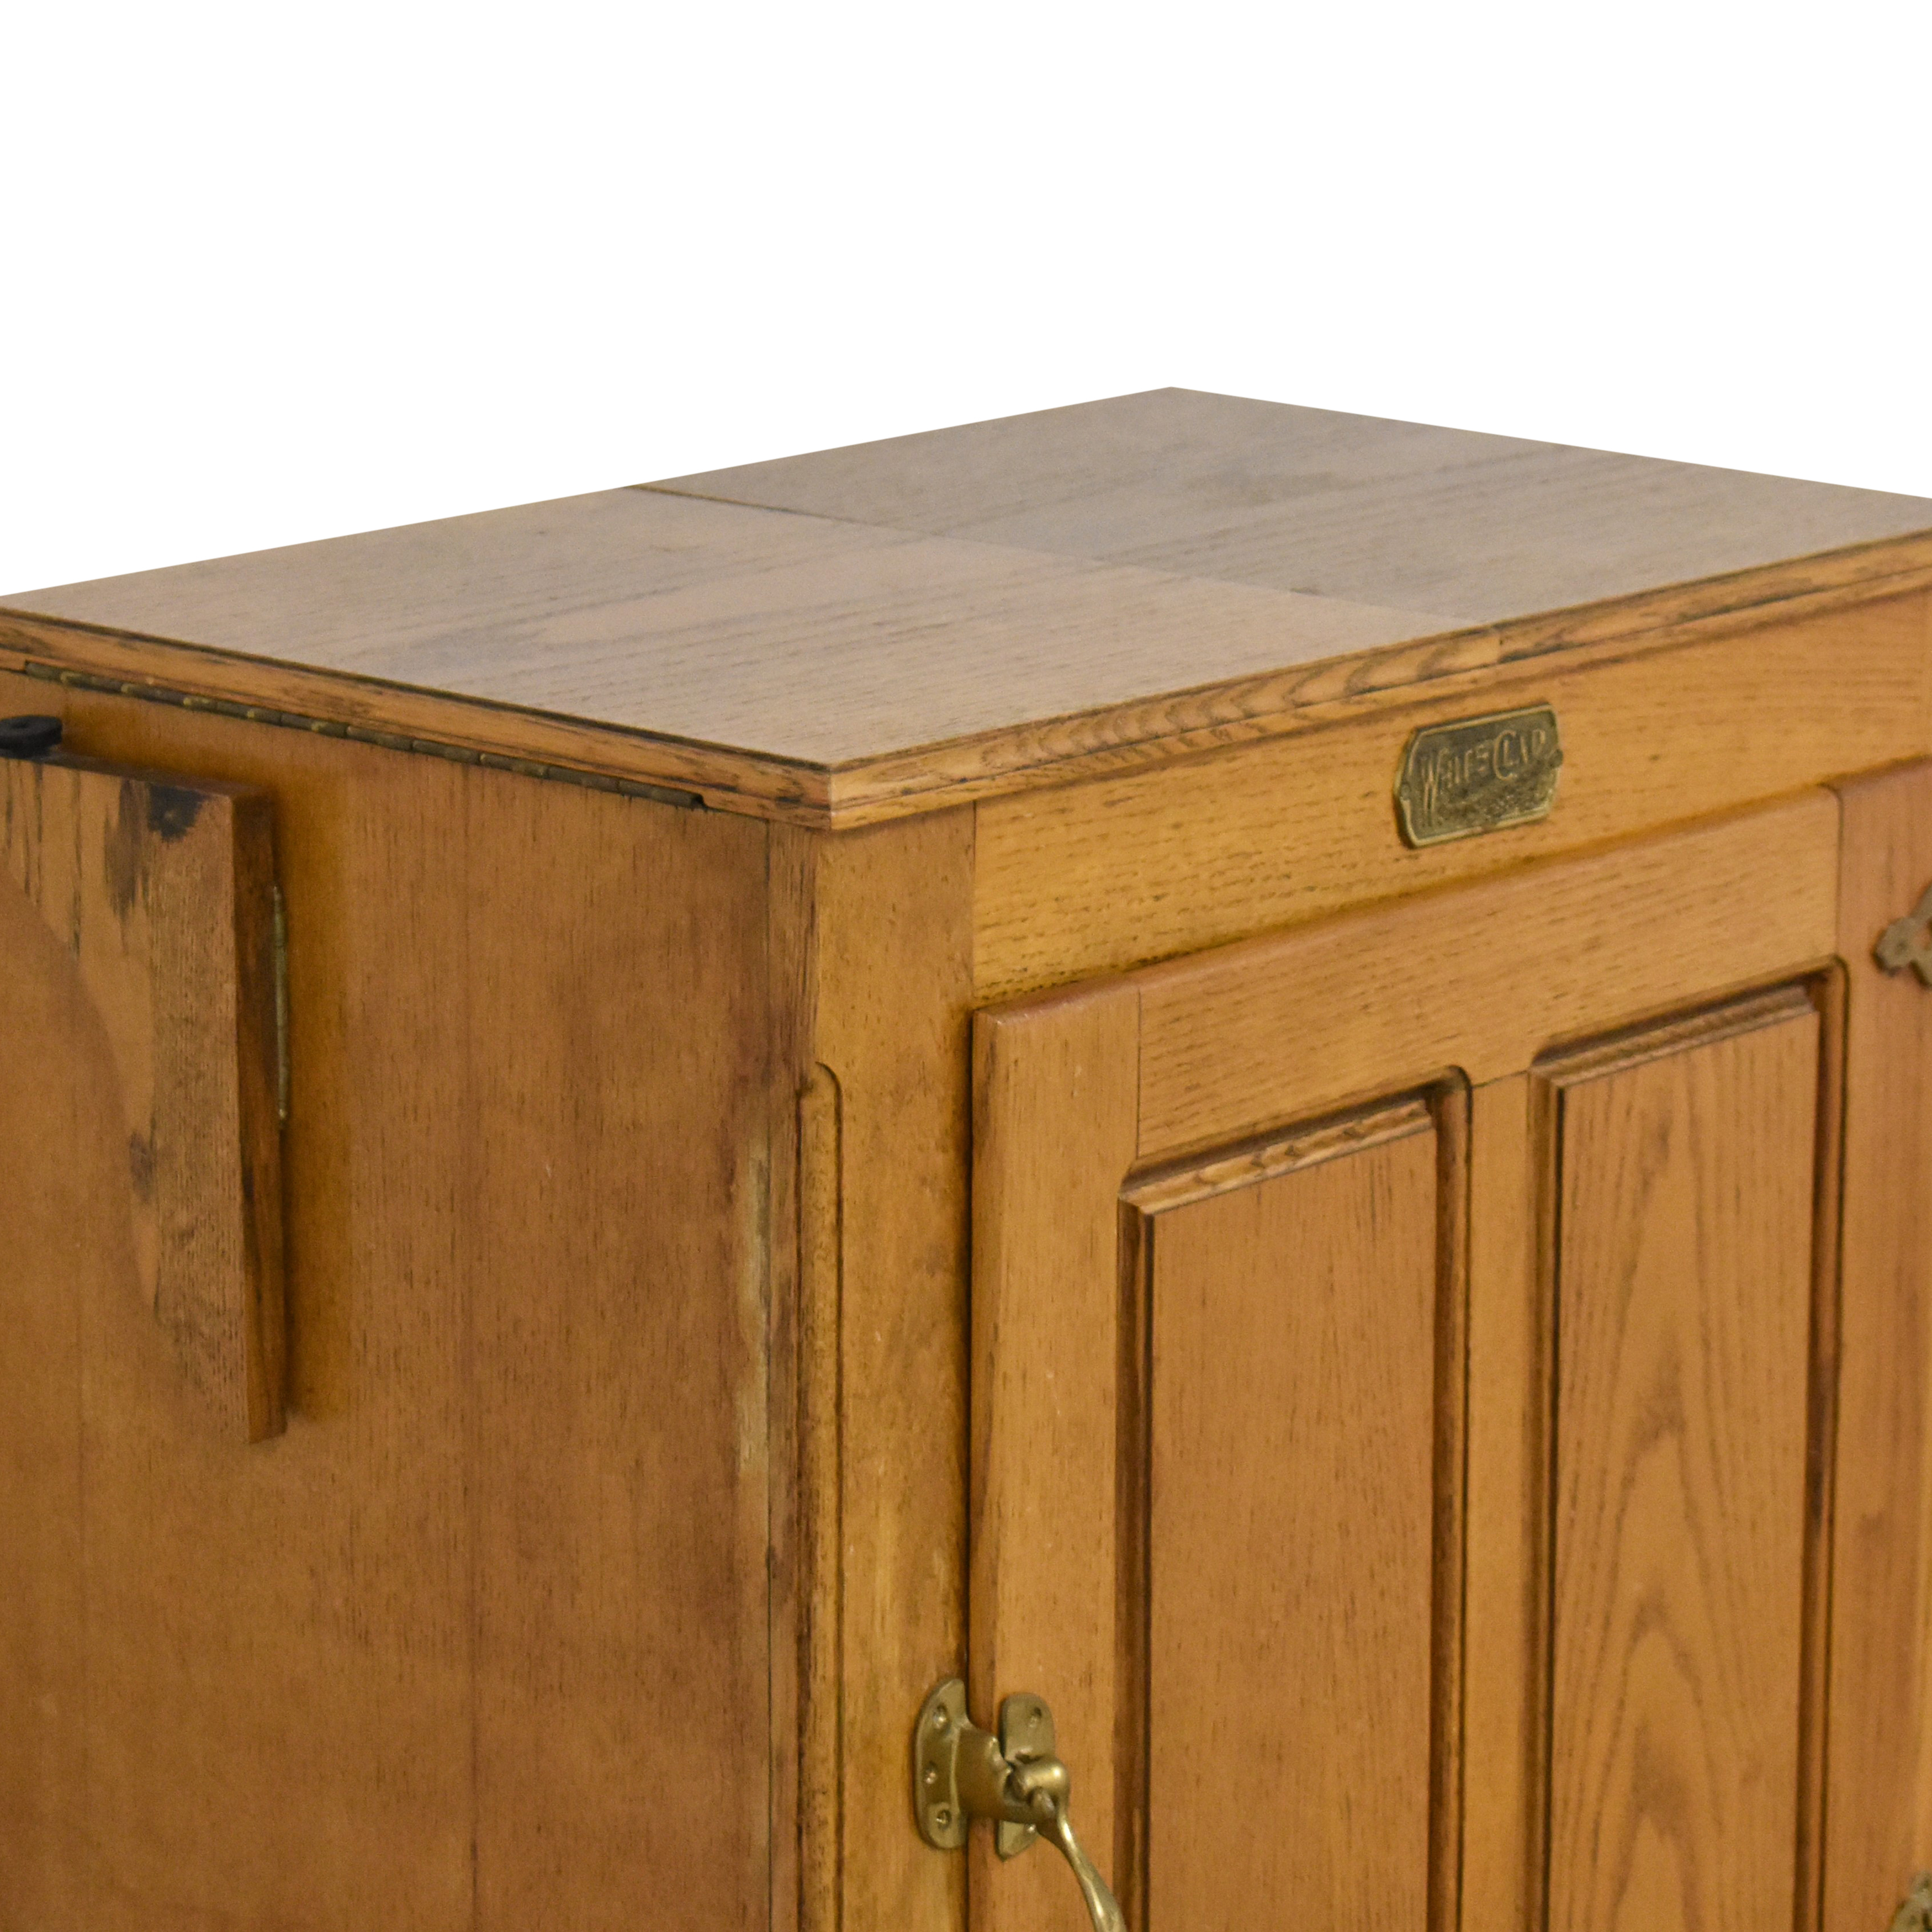 Simmons Hardware Simmons Hardware White Clad Ice Box Wine Cabinet on Casters Cabinets & Sideboards